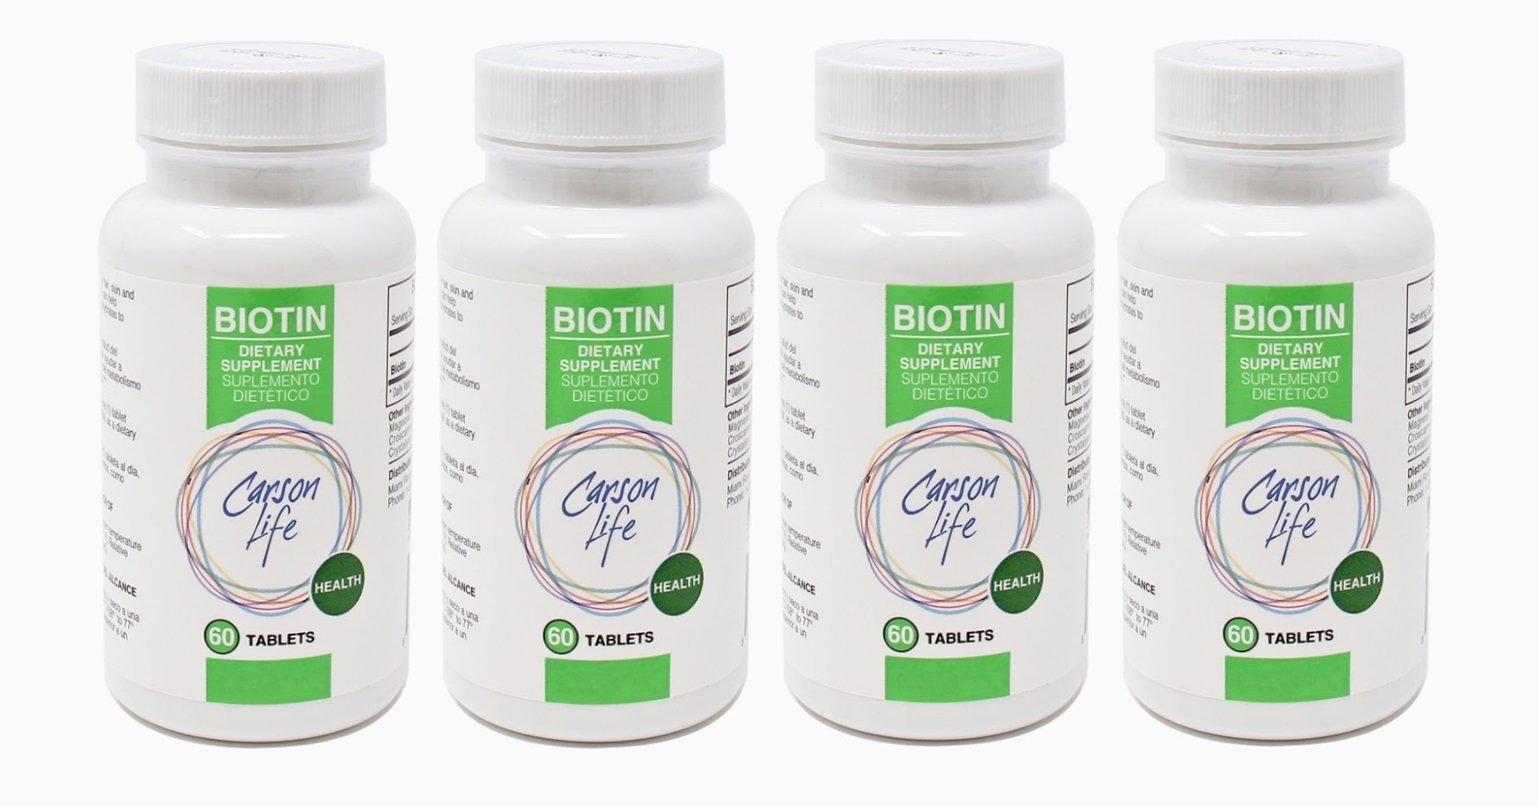 CARSON LIFE Biotin Supplement - 4 Pack, 60 Tablets Each - For Men and Women - Vitamin Supplement That Promotes Hair Growth - Advanced Formula Helps Boost Energy and Cell Growth - Made In The USA